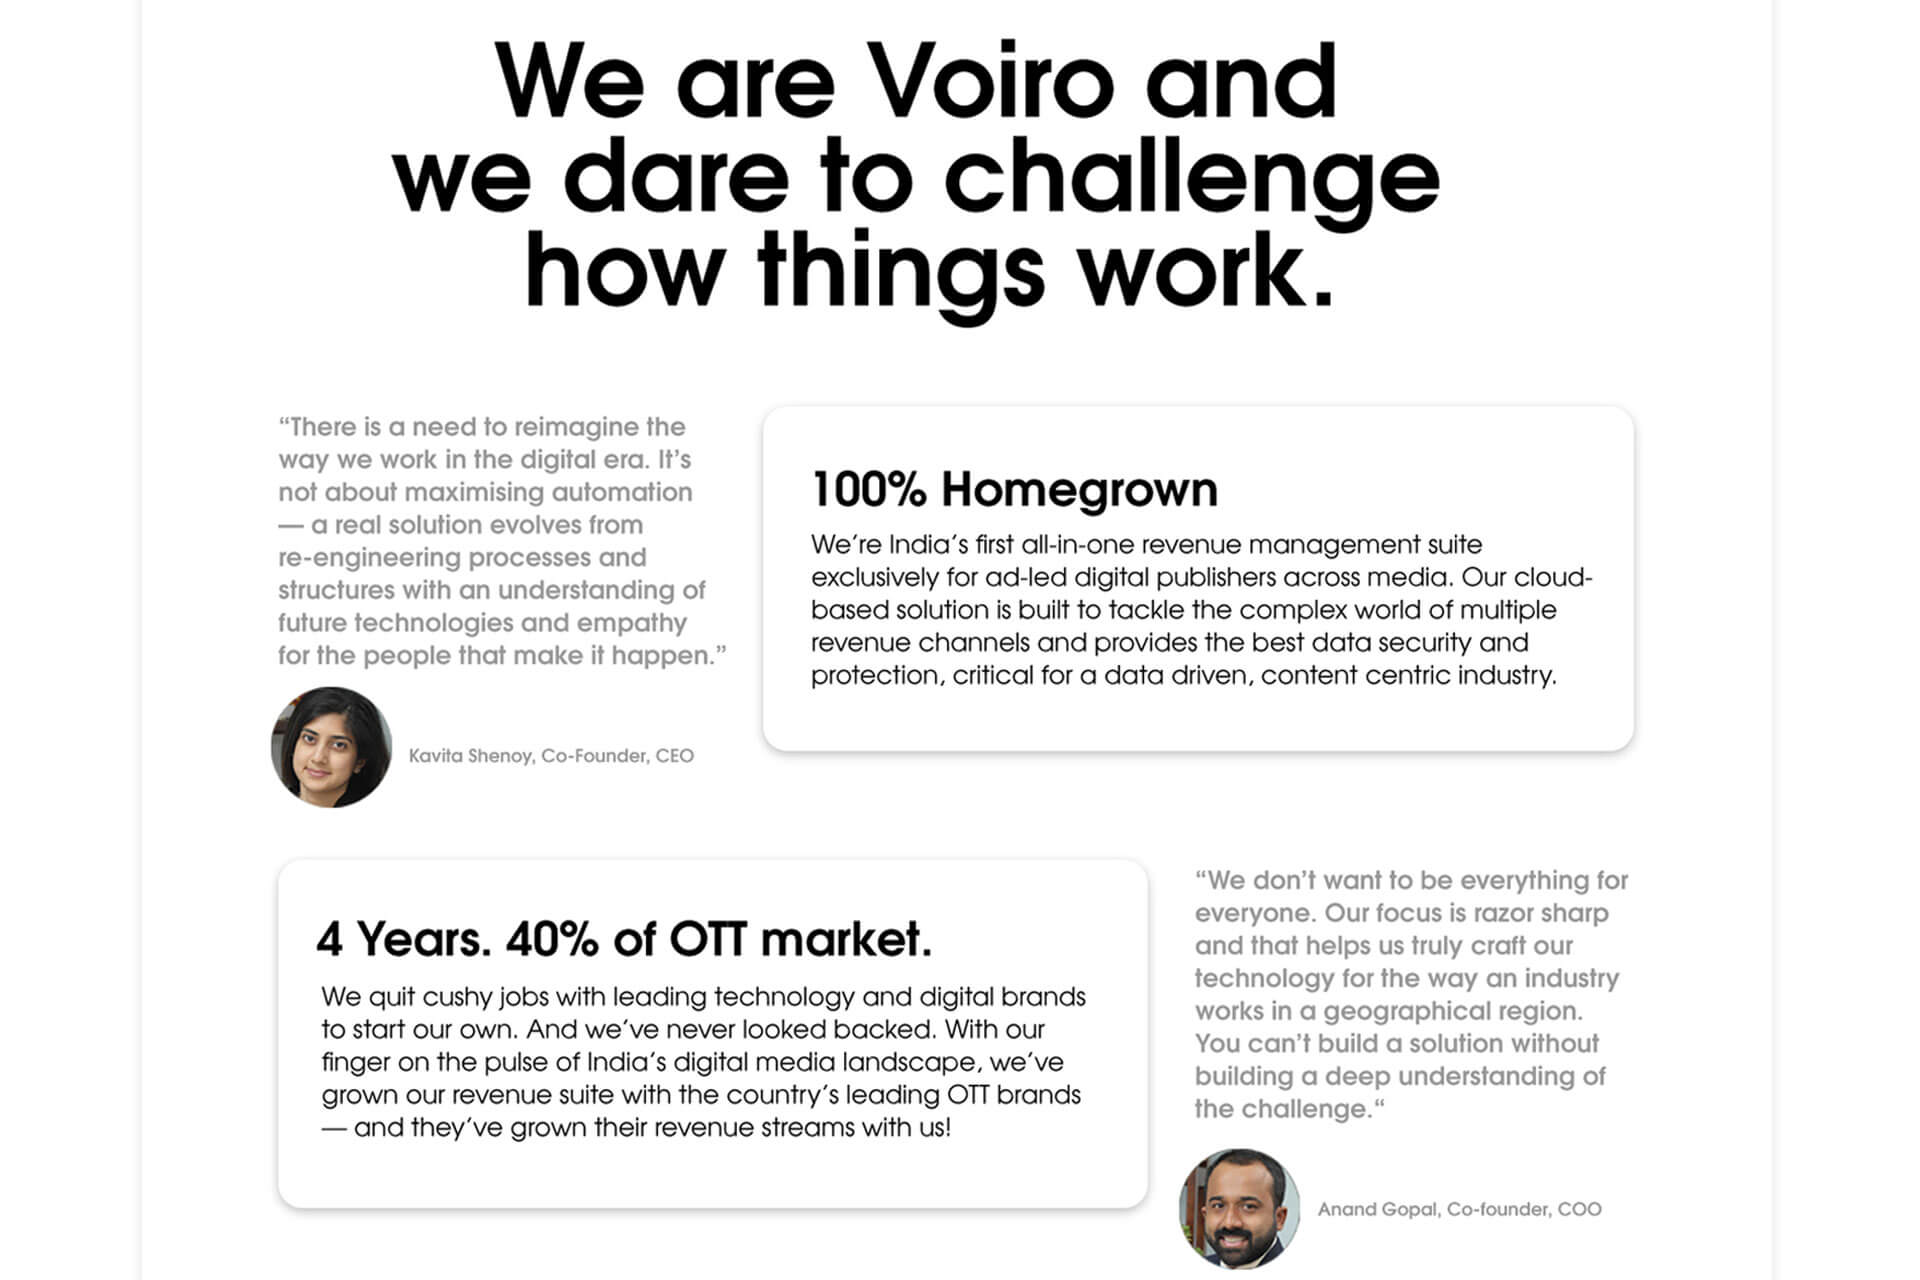 About the team at Vorio